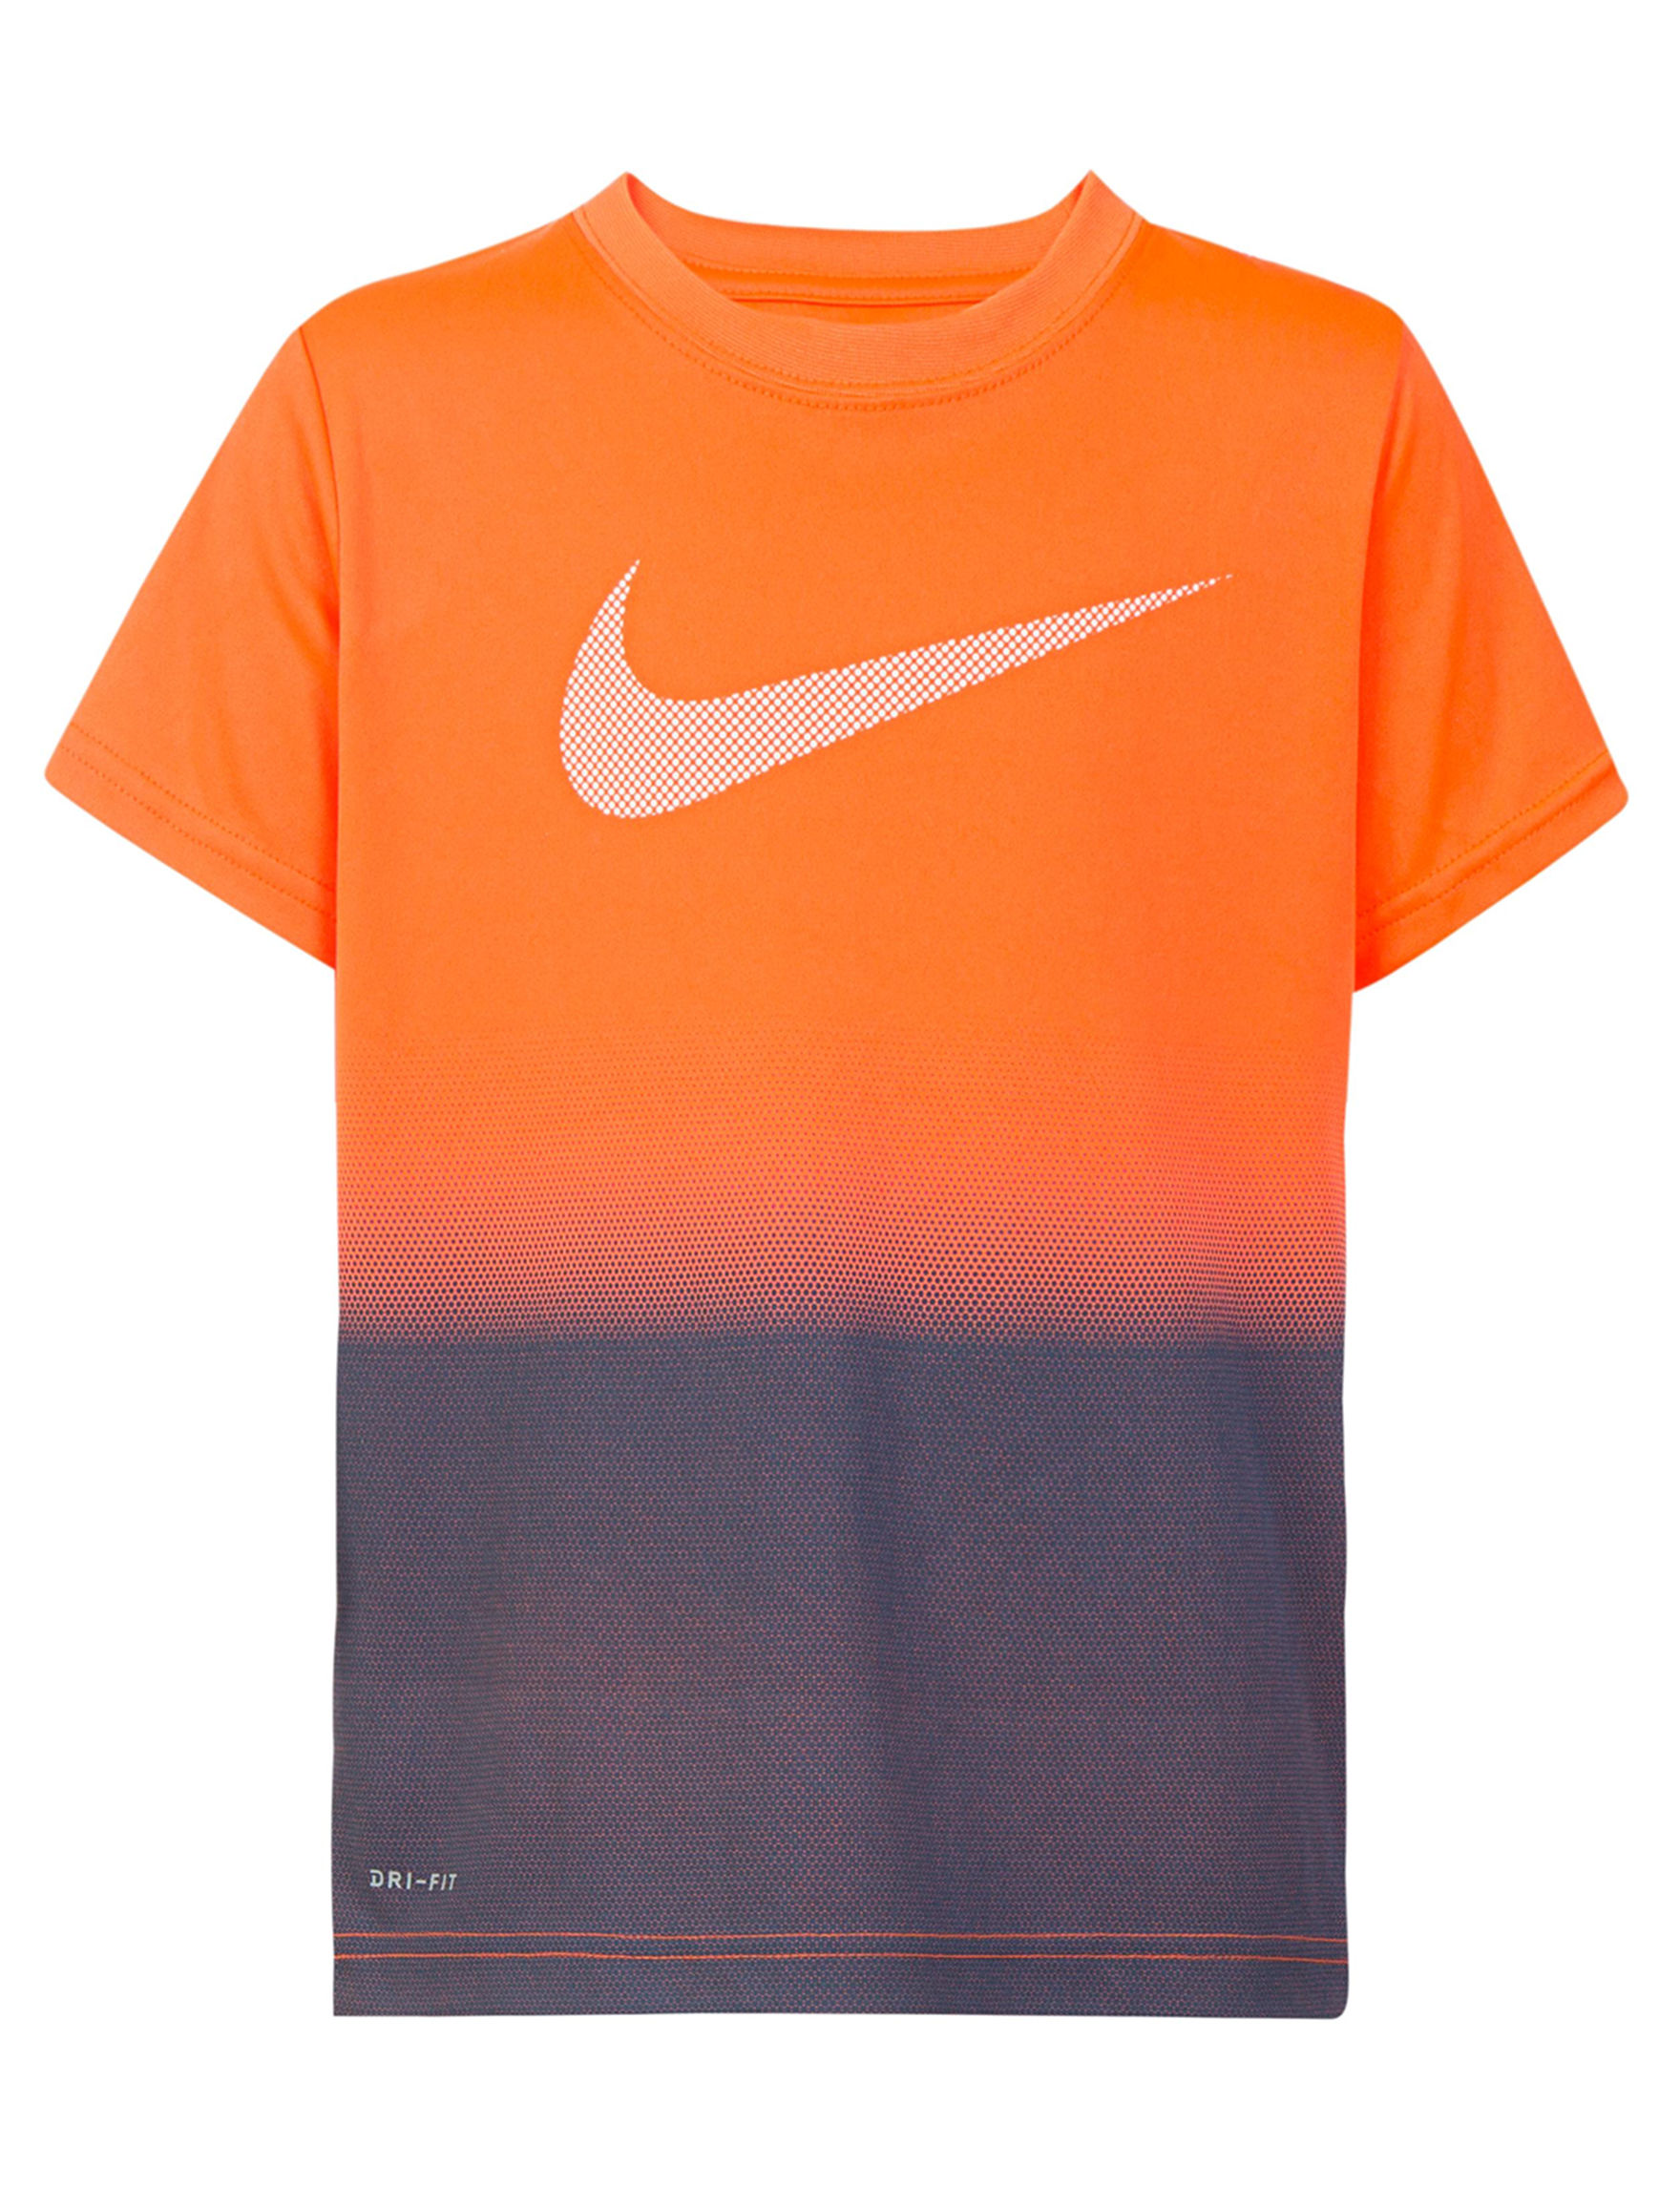 Nike Orange Tees & Tanks